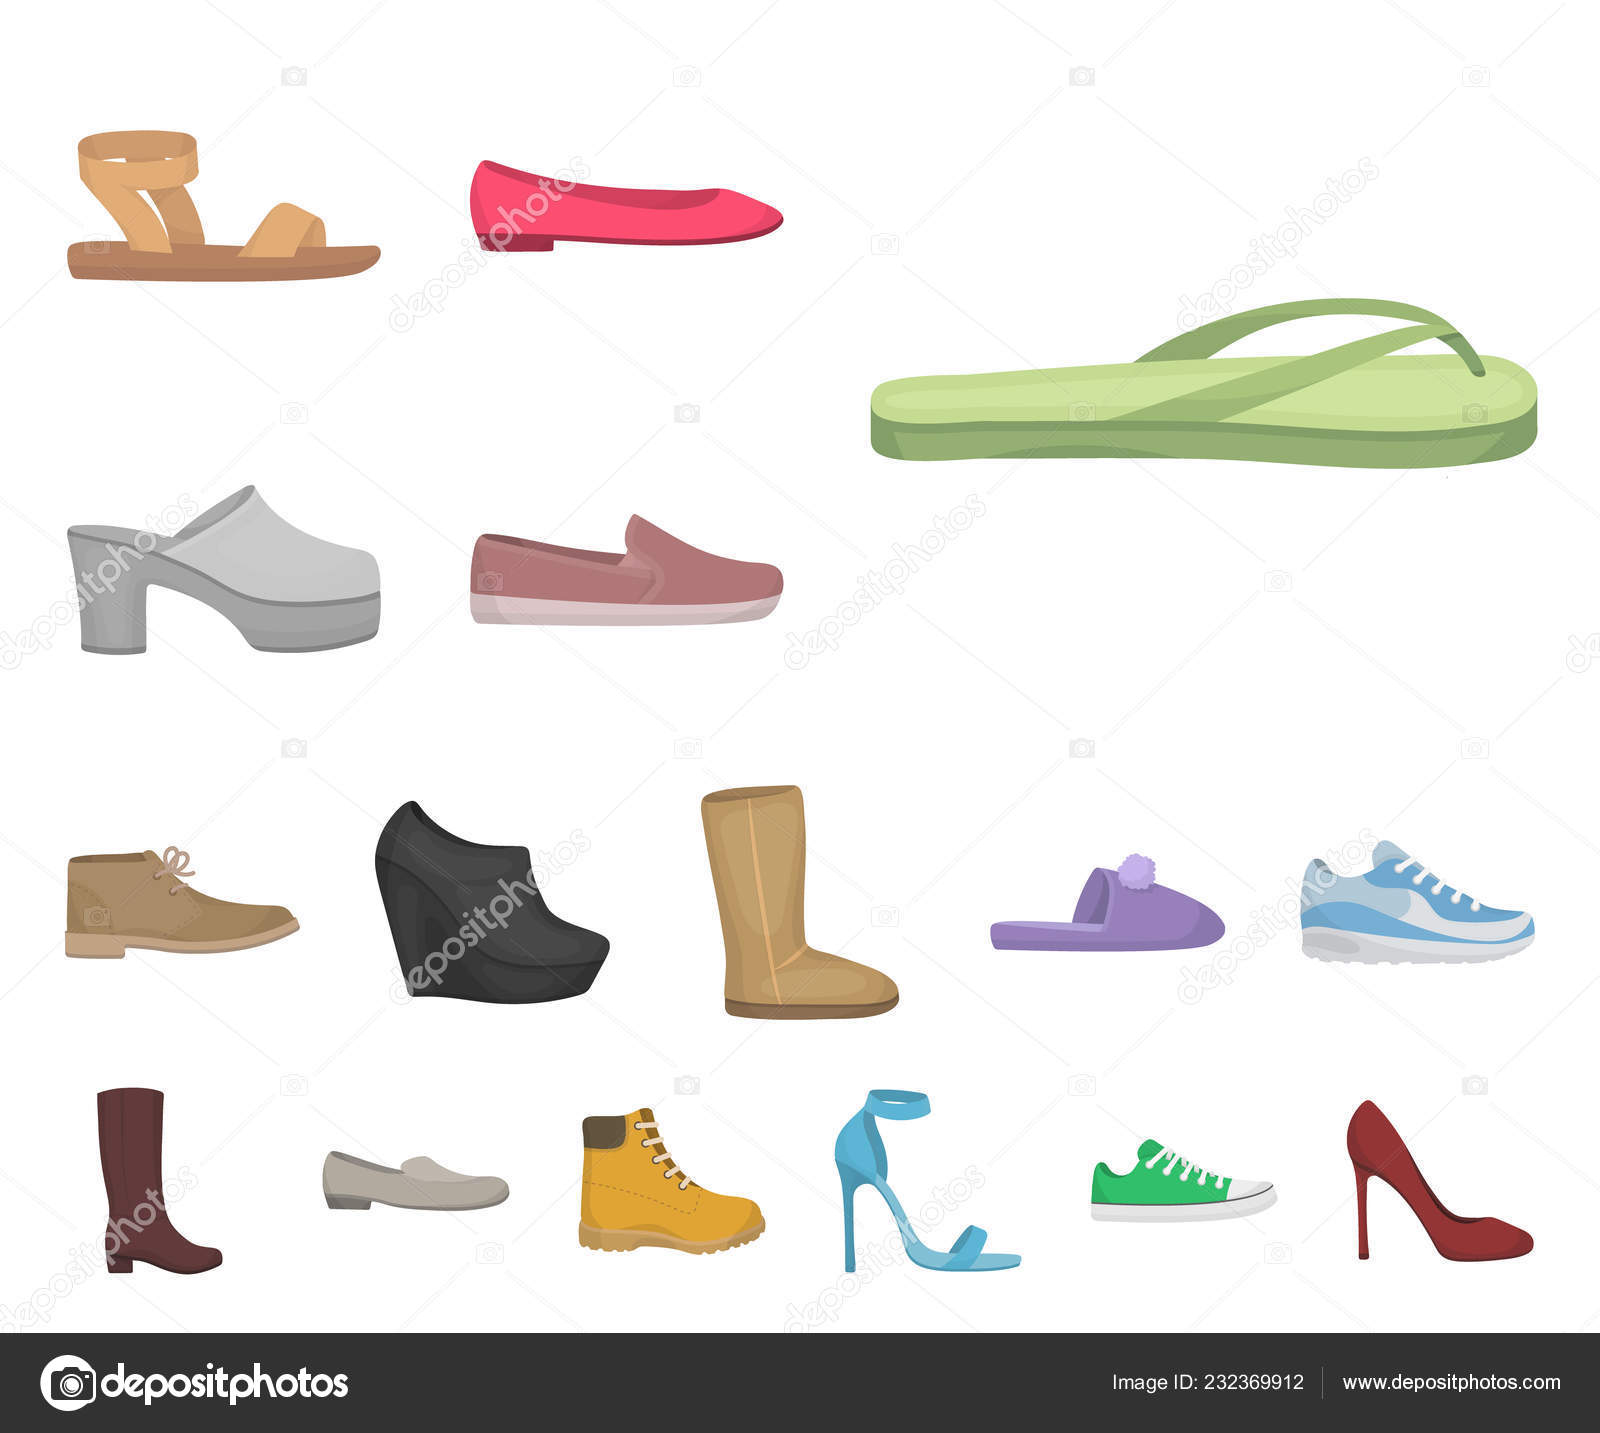 0442aecff371 A variety of shoes cartoon icons in set collection for design. Boot,  sneakers vector symbol stock illustration. — Vector by PandaVector